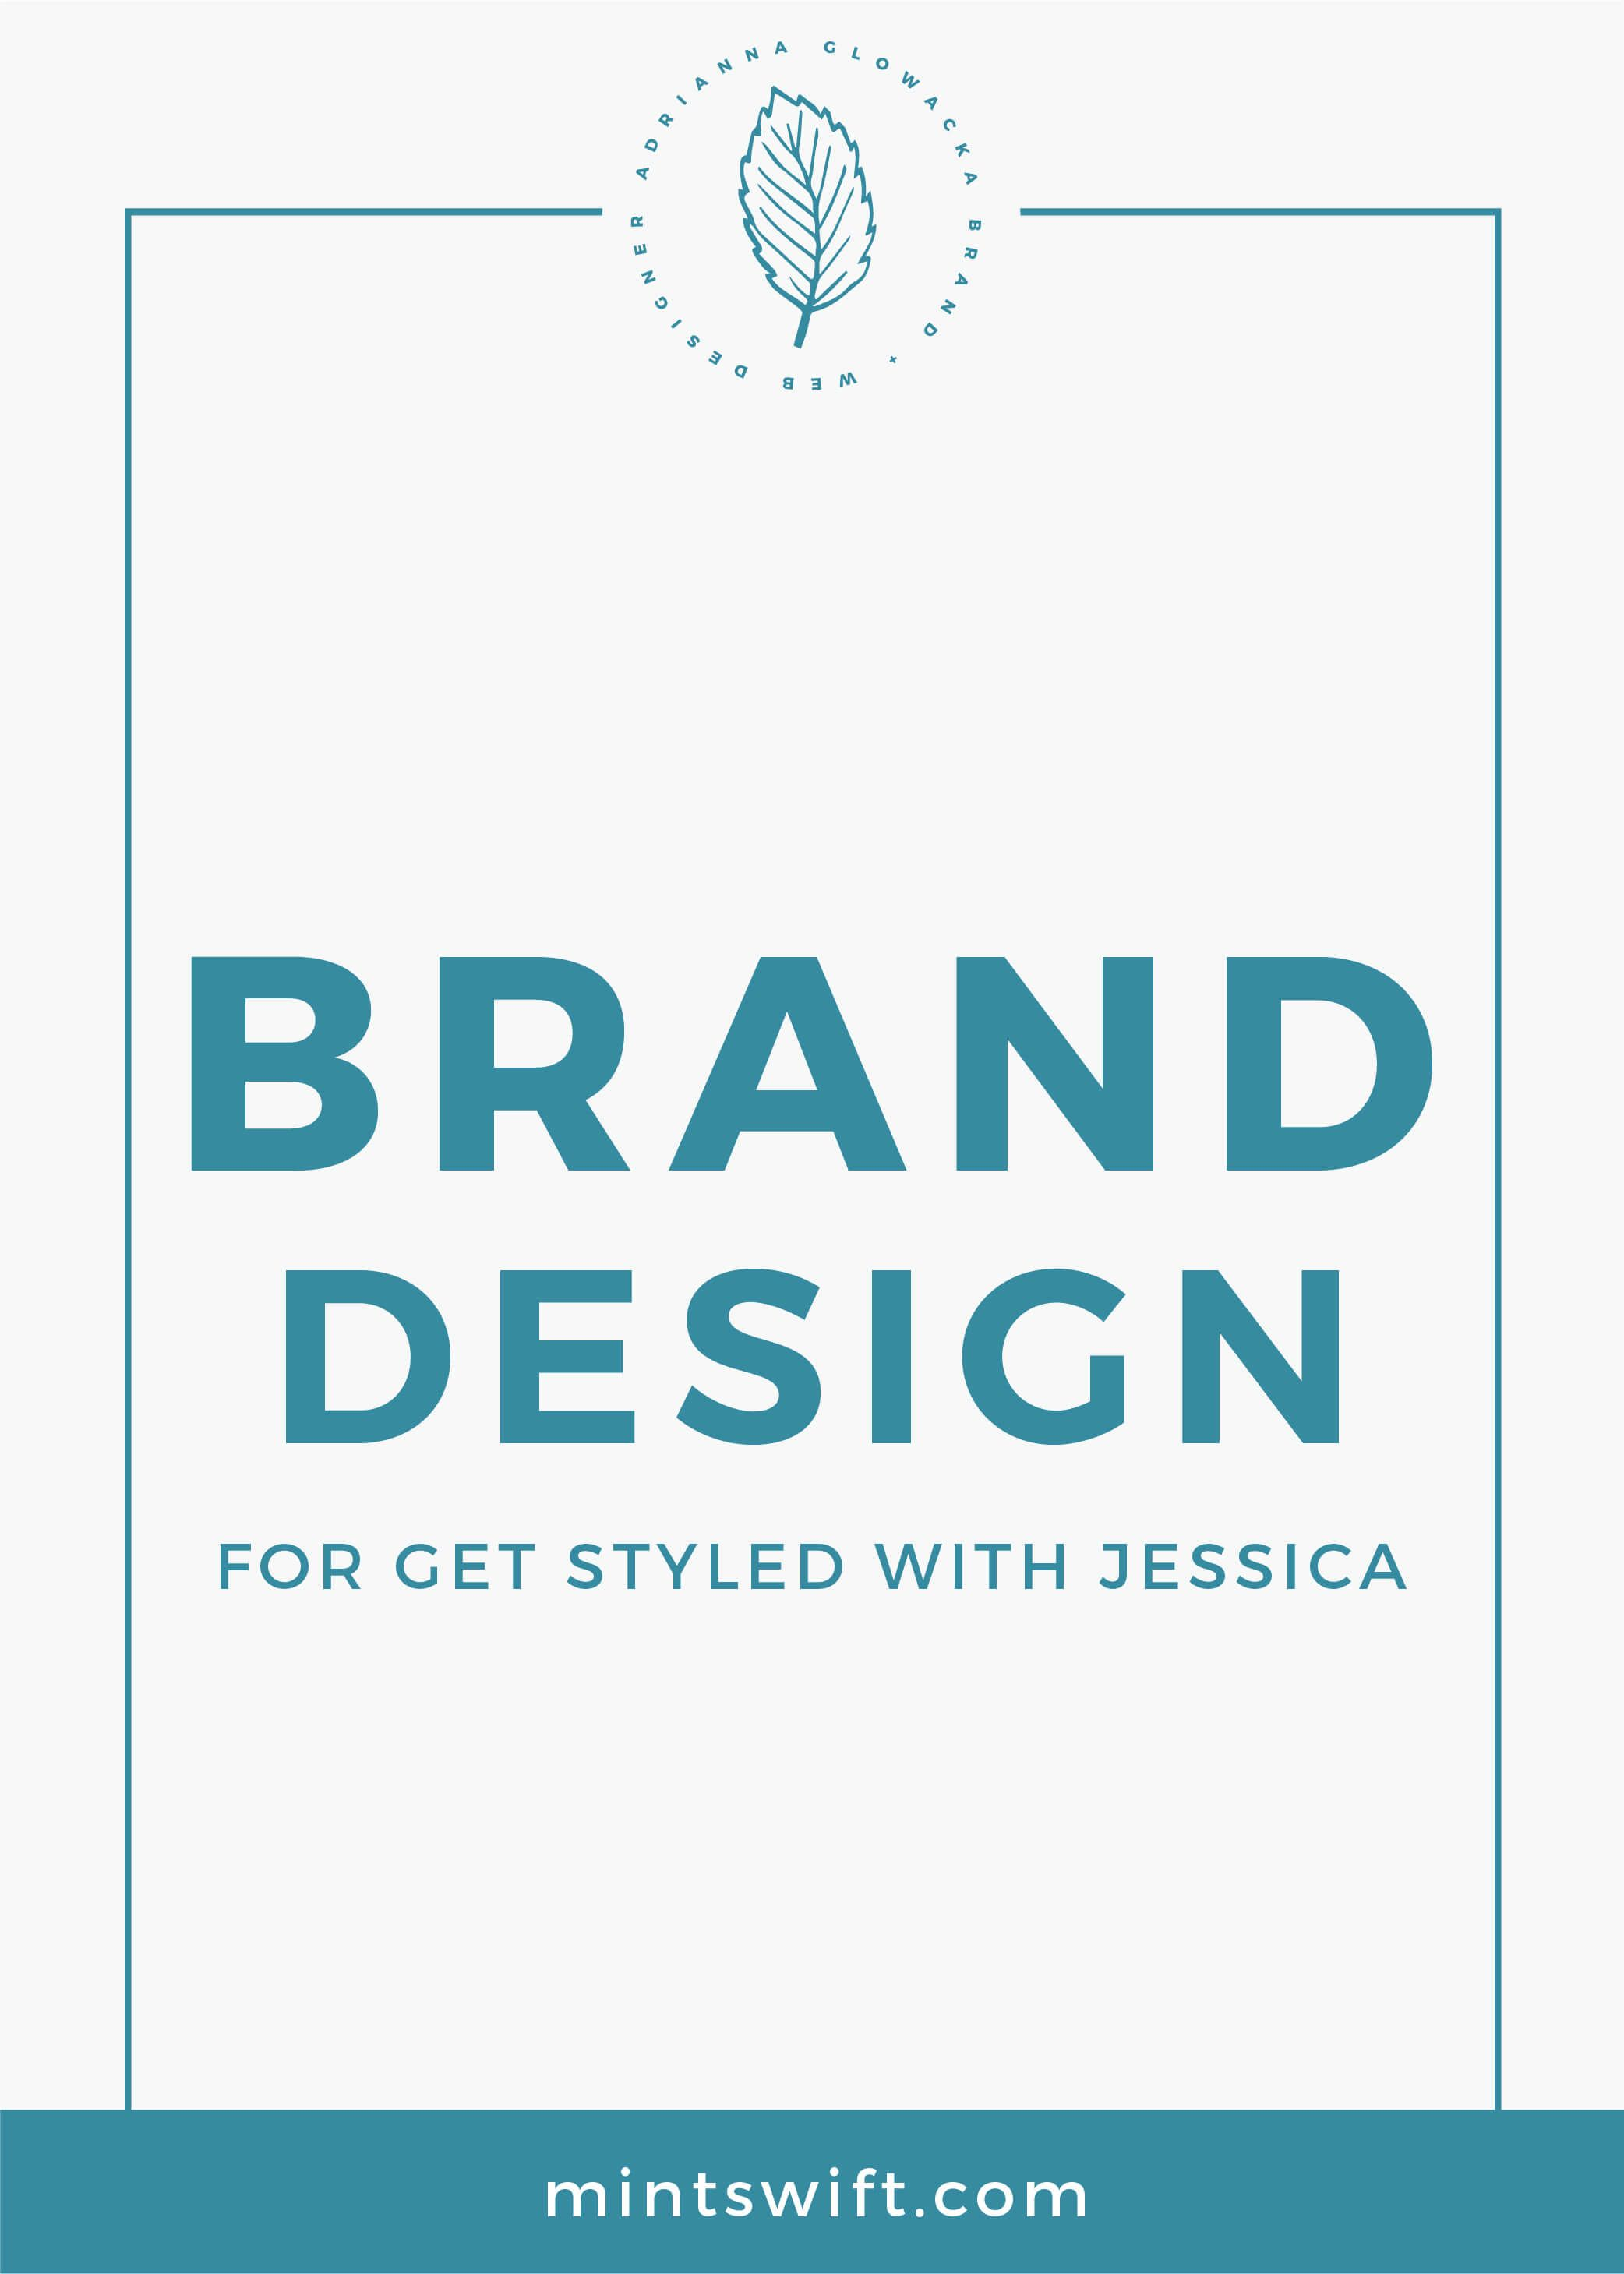 Brand Design for Get Styled with Jessica